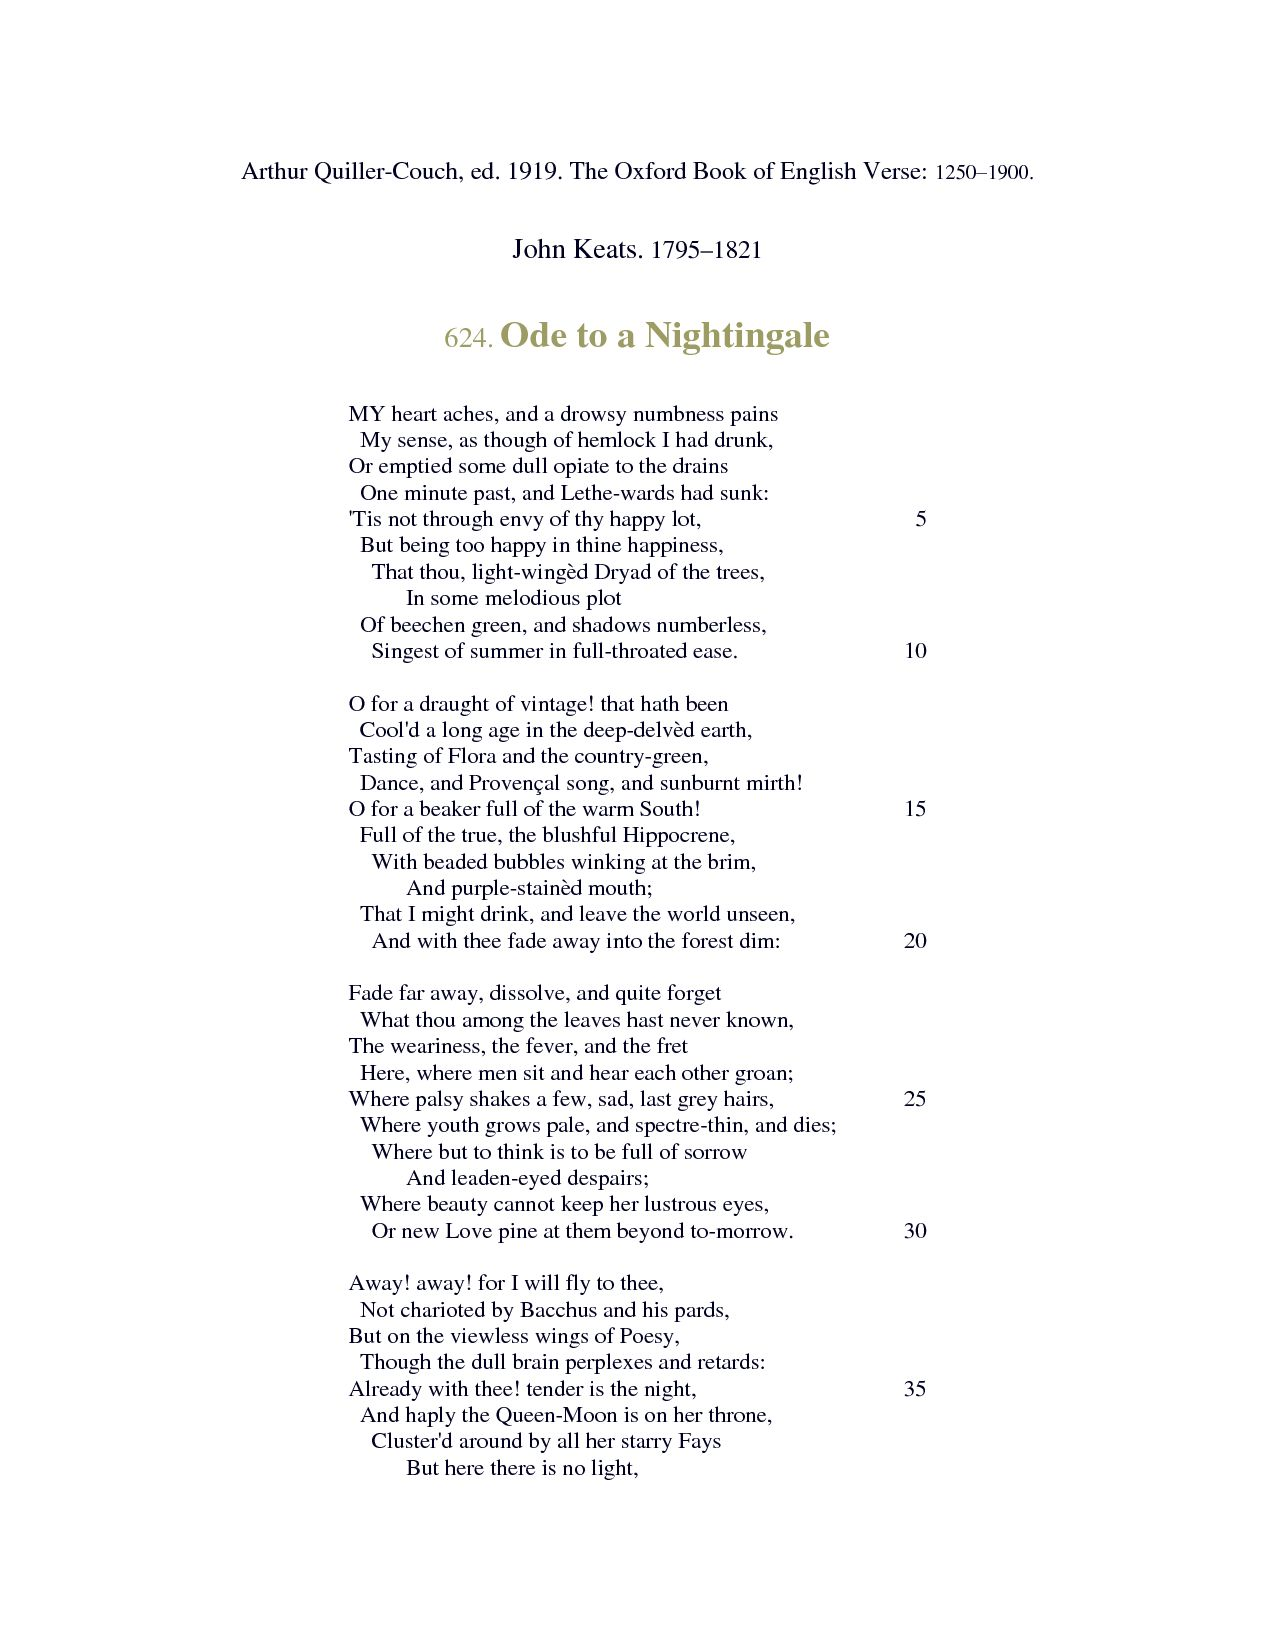 keats ode to a nightingale essay After losing his mother and brother to tuberculosis, and developing signs of the sickness himself, john keats begins to analyze life and death in his personal poem ode to a nightingale (stott, jones, and bowers 144).